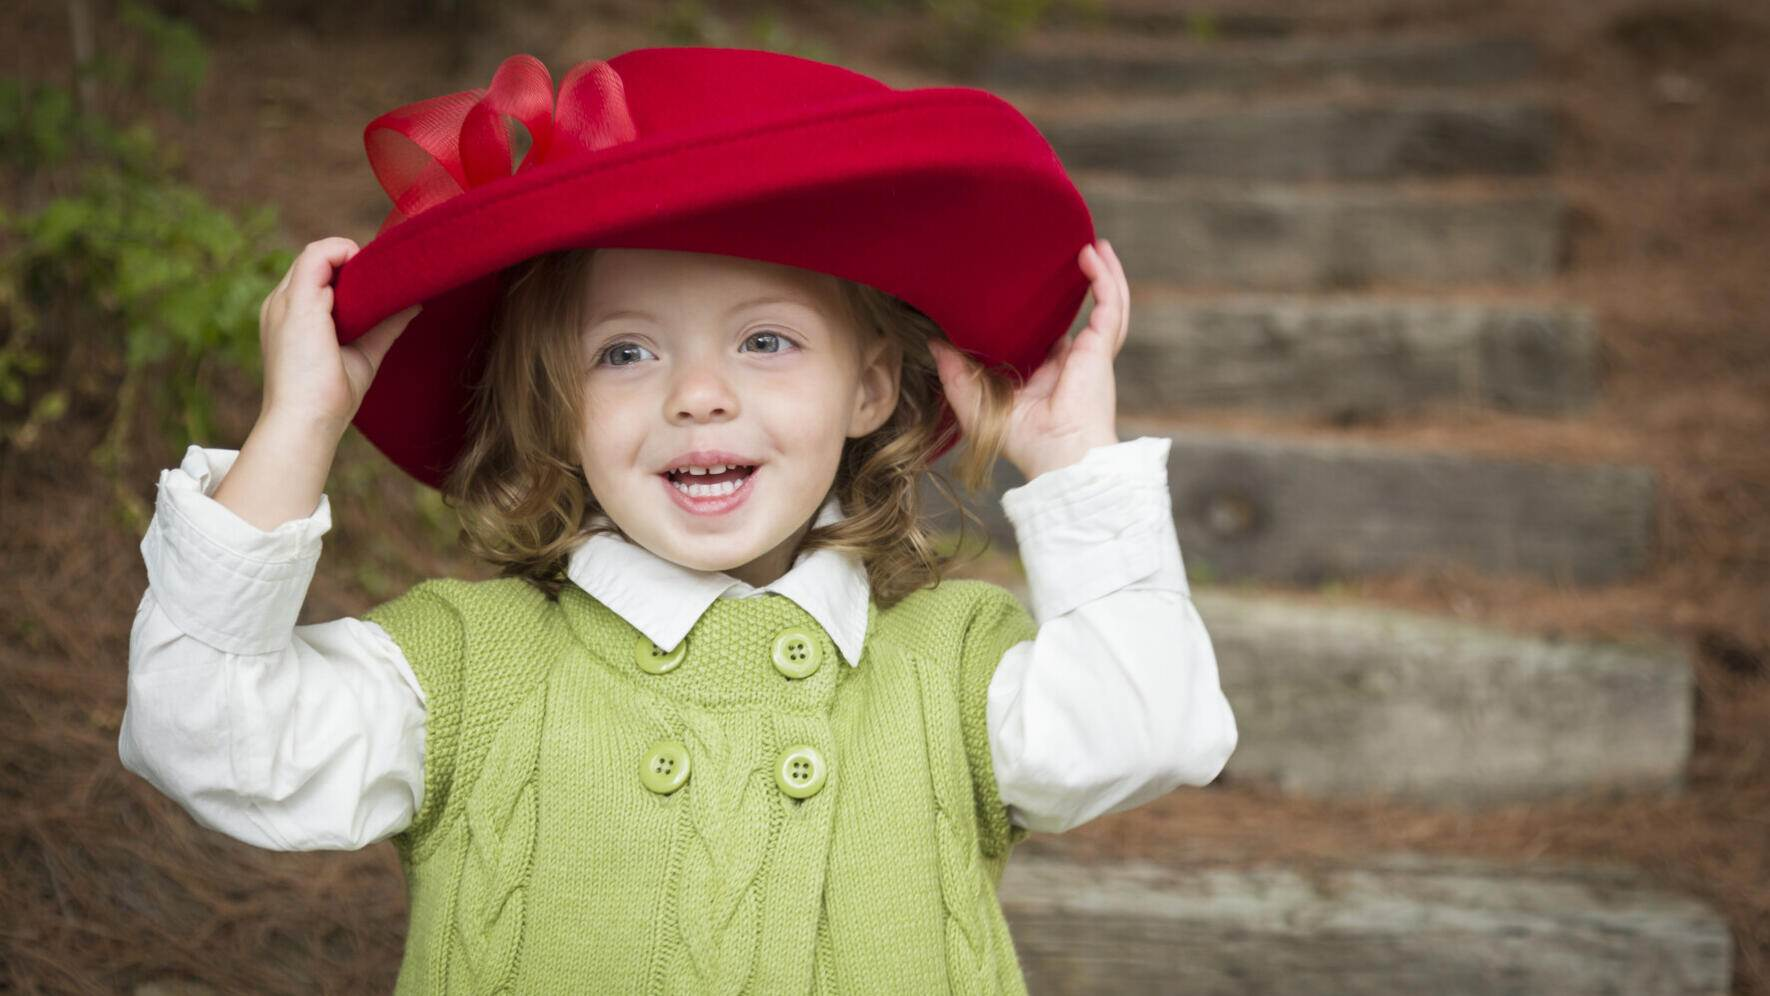 Child Girl with Red Hat Playing Outside